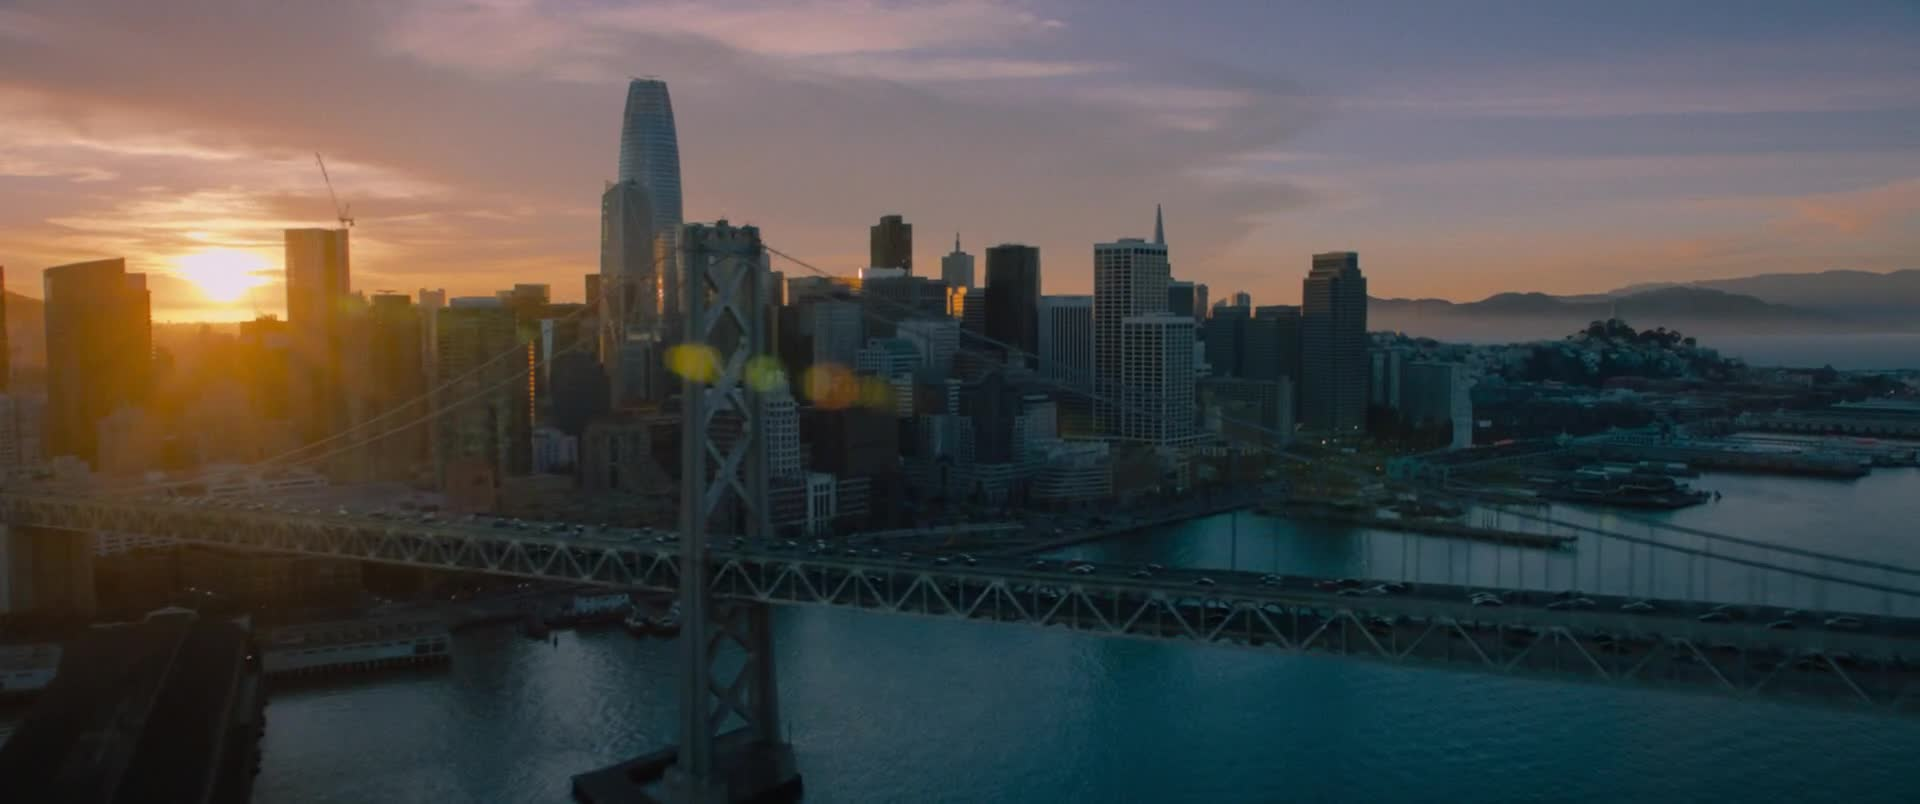 SonicMovieSanFranciscoBackgroundShot